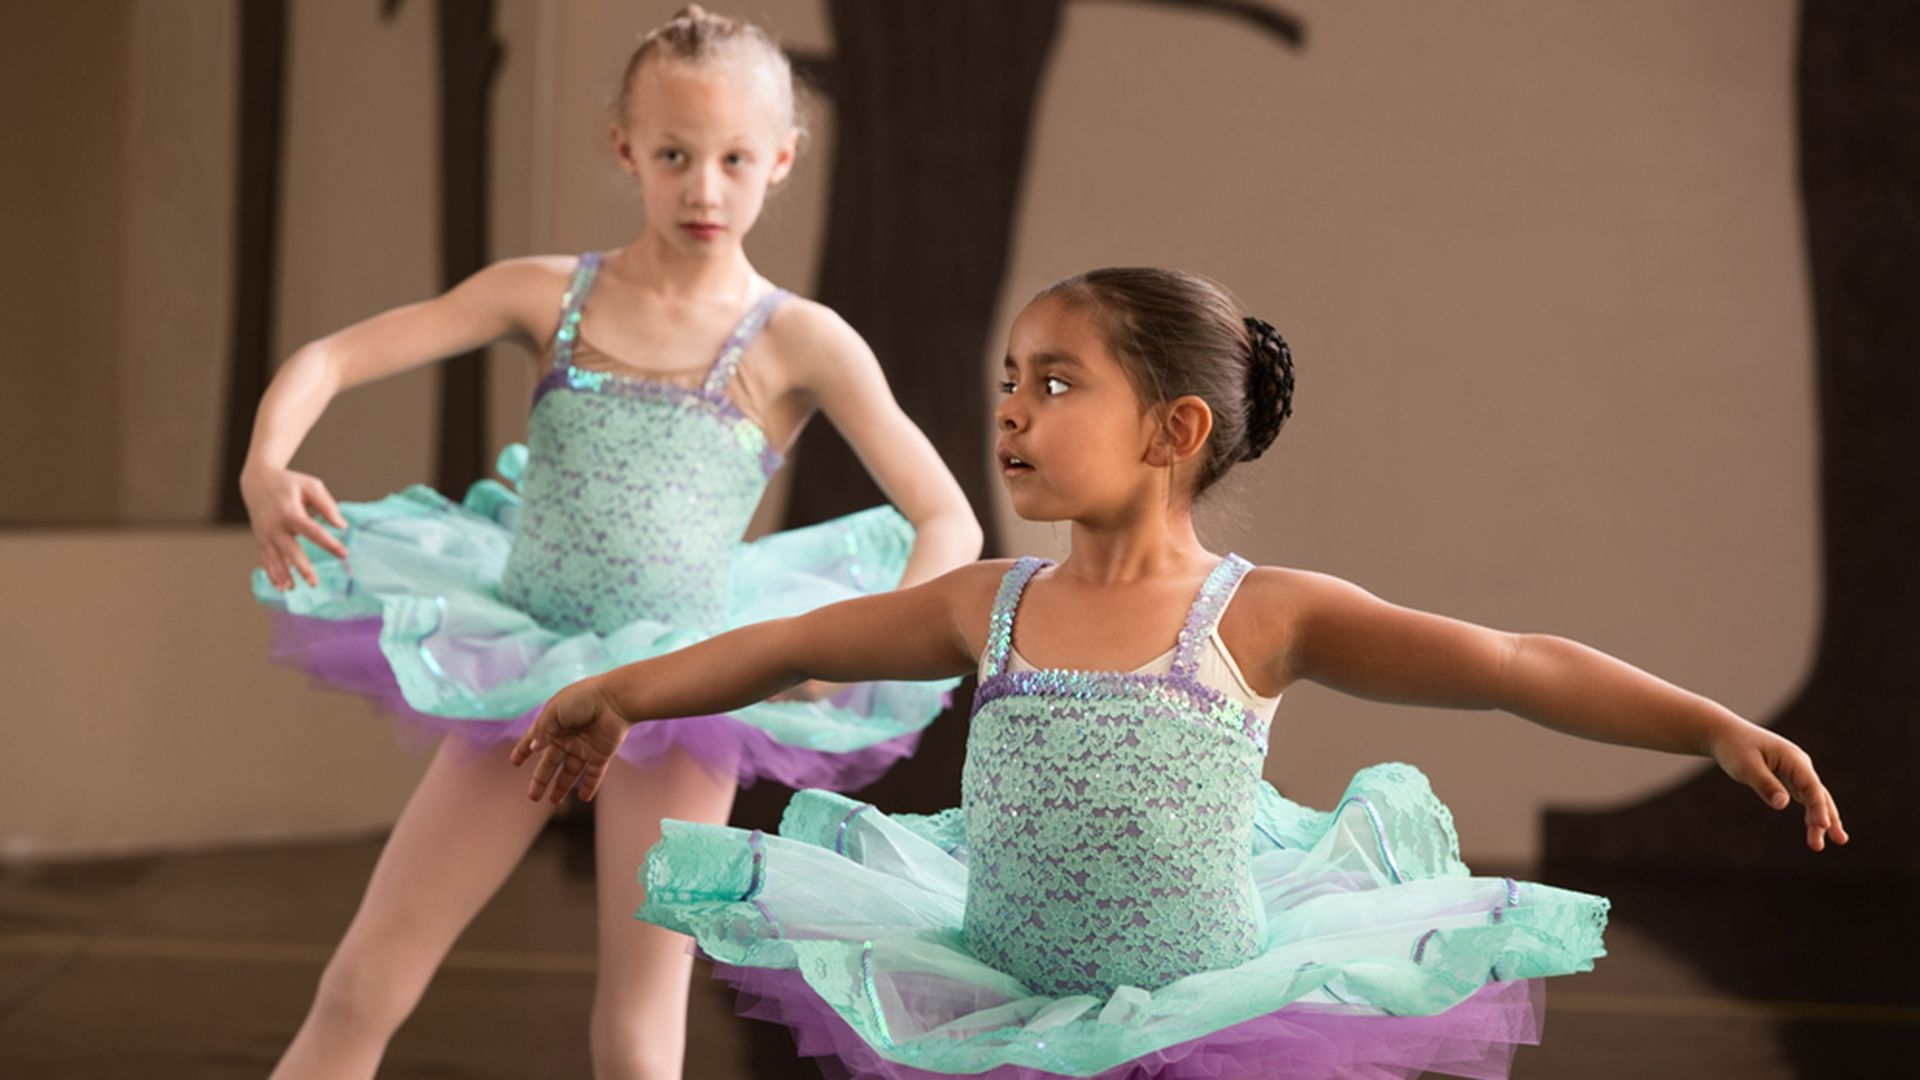 Tutus, tap, no sweat? Kids in dance classes may not get enough cardio